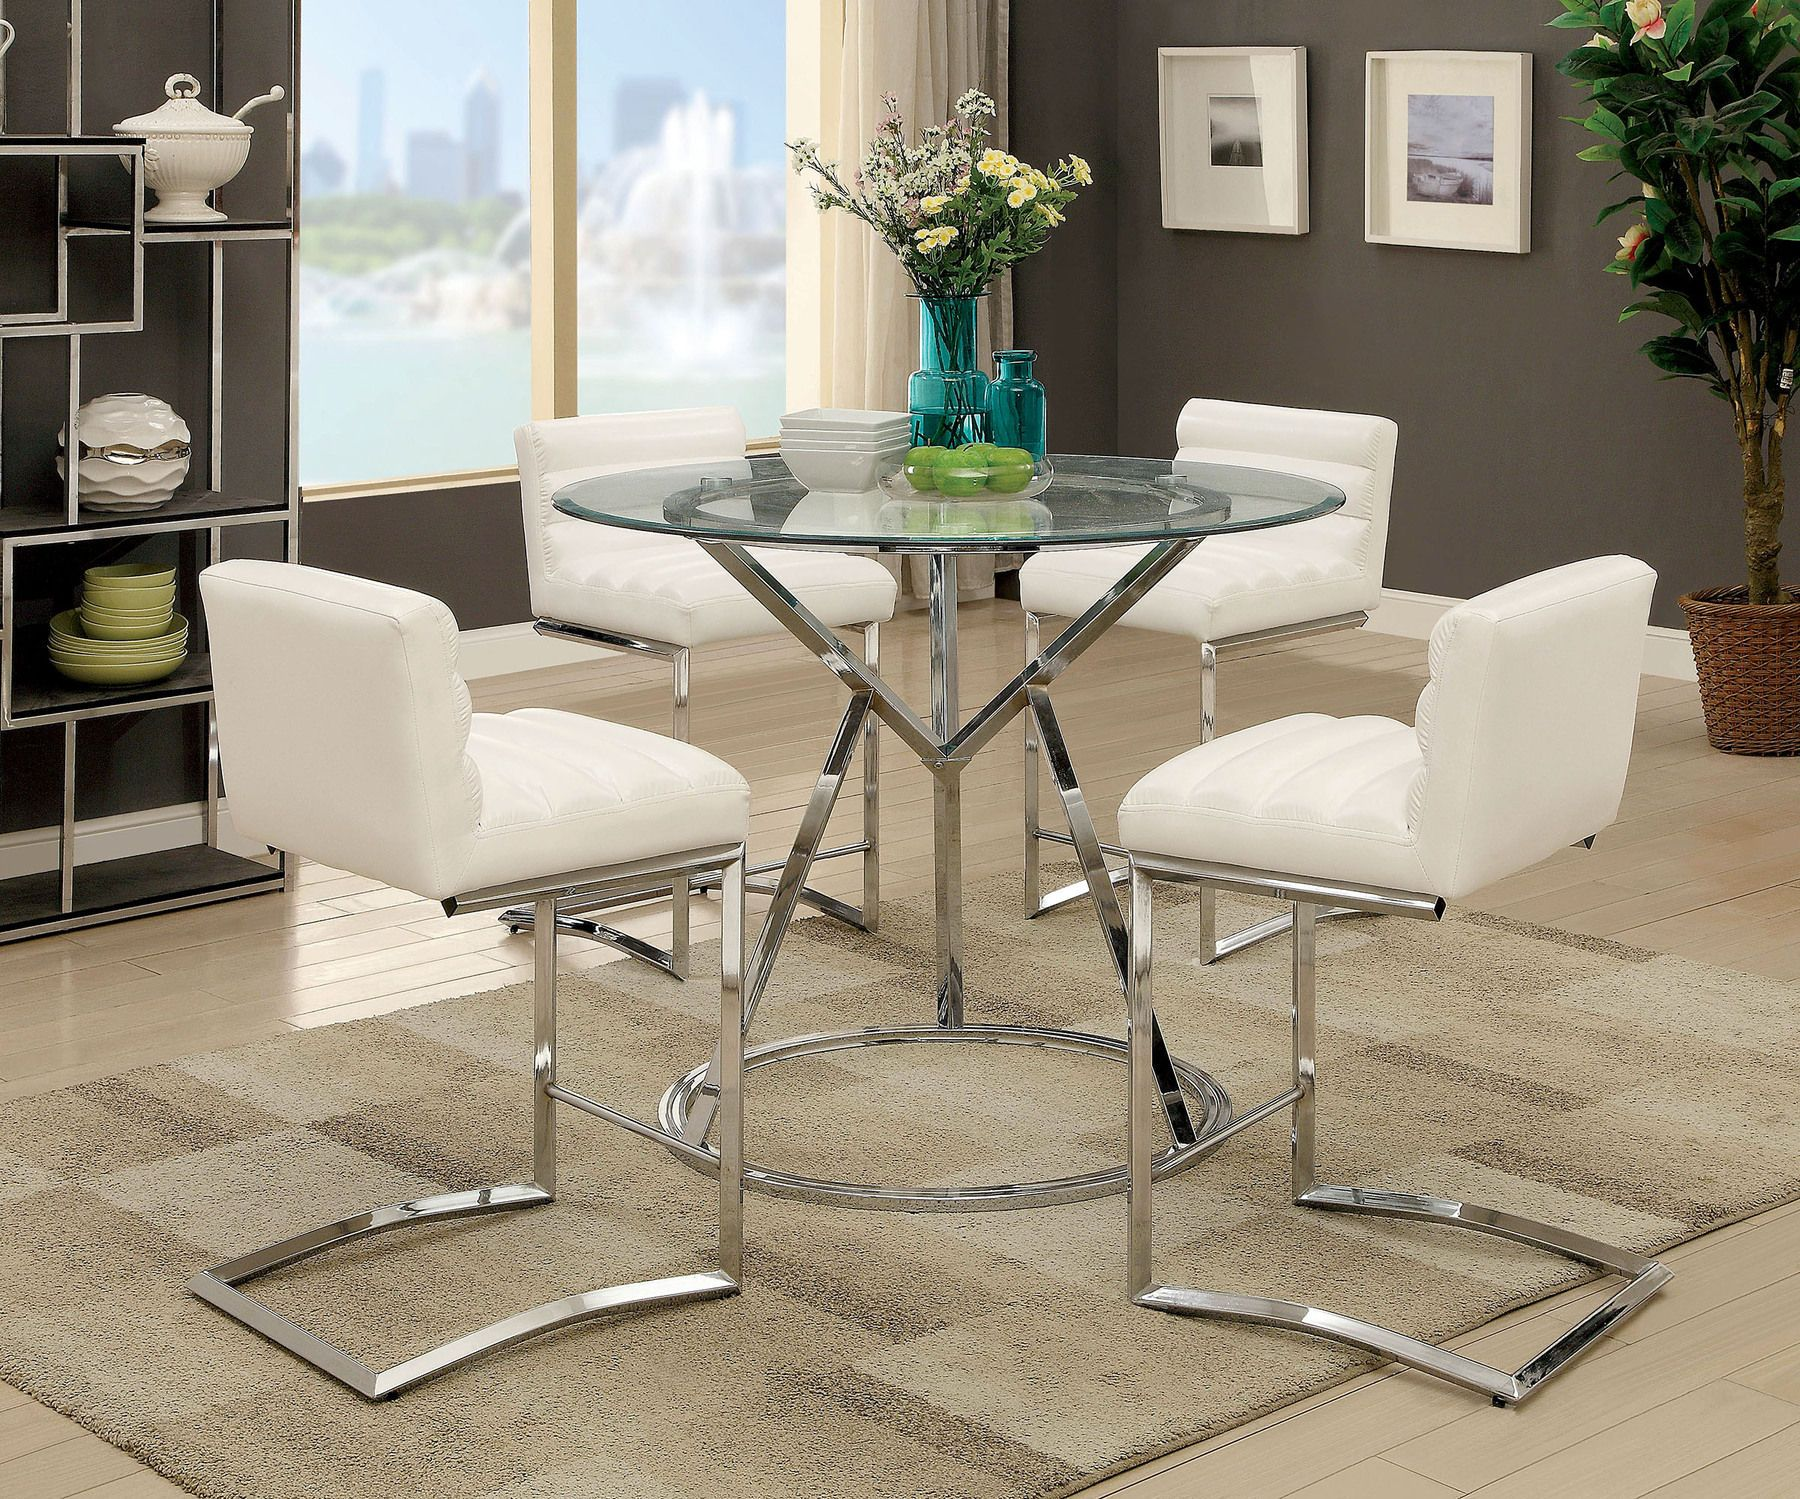 Livada Ii White Table Cm3170rpt Furniture Of America Counter Height Dining Sets Counter Height Dining Table Set Counter Height Dining Table Dining Table